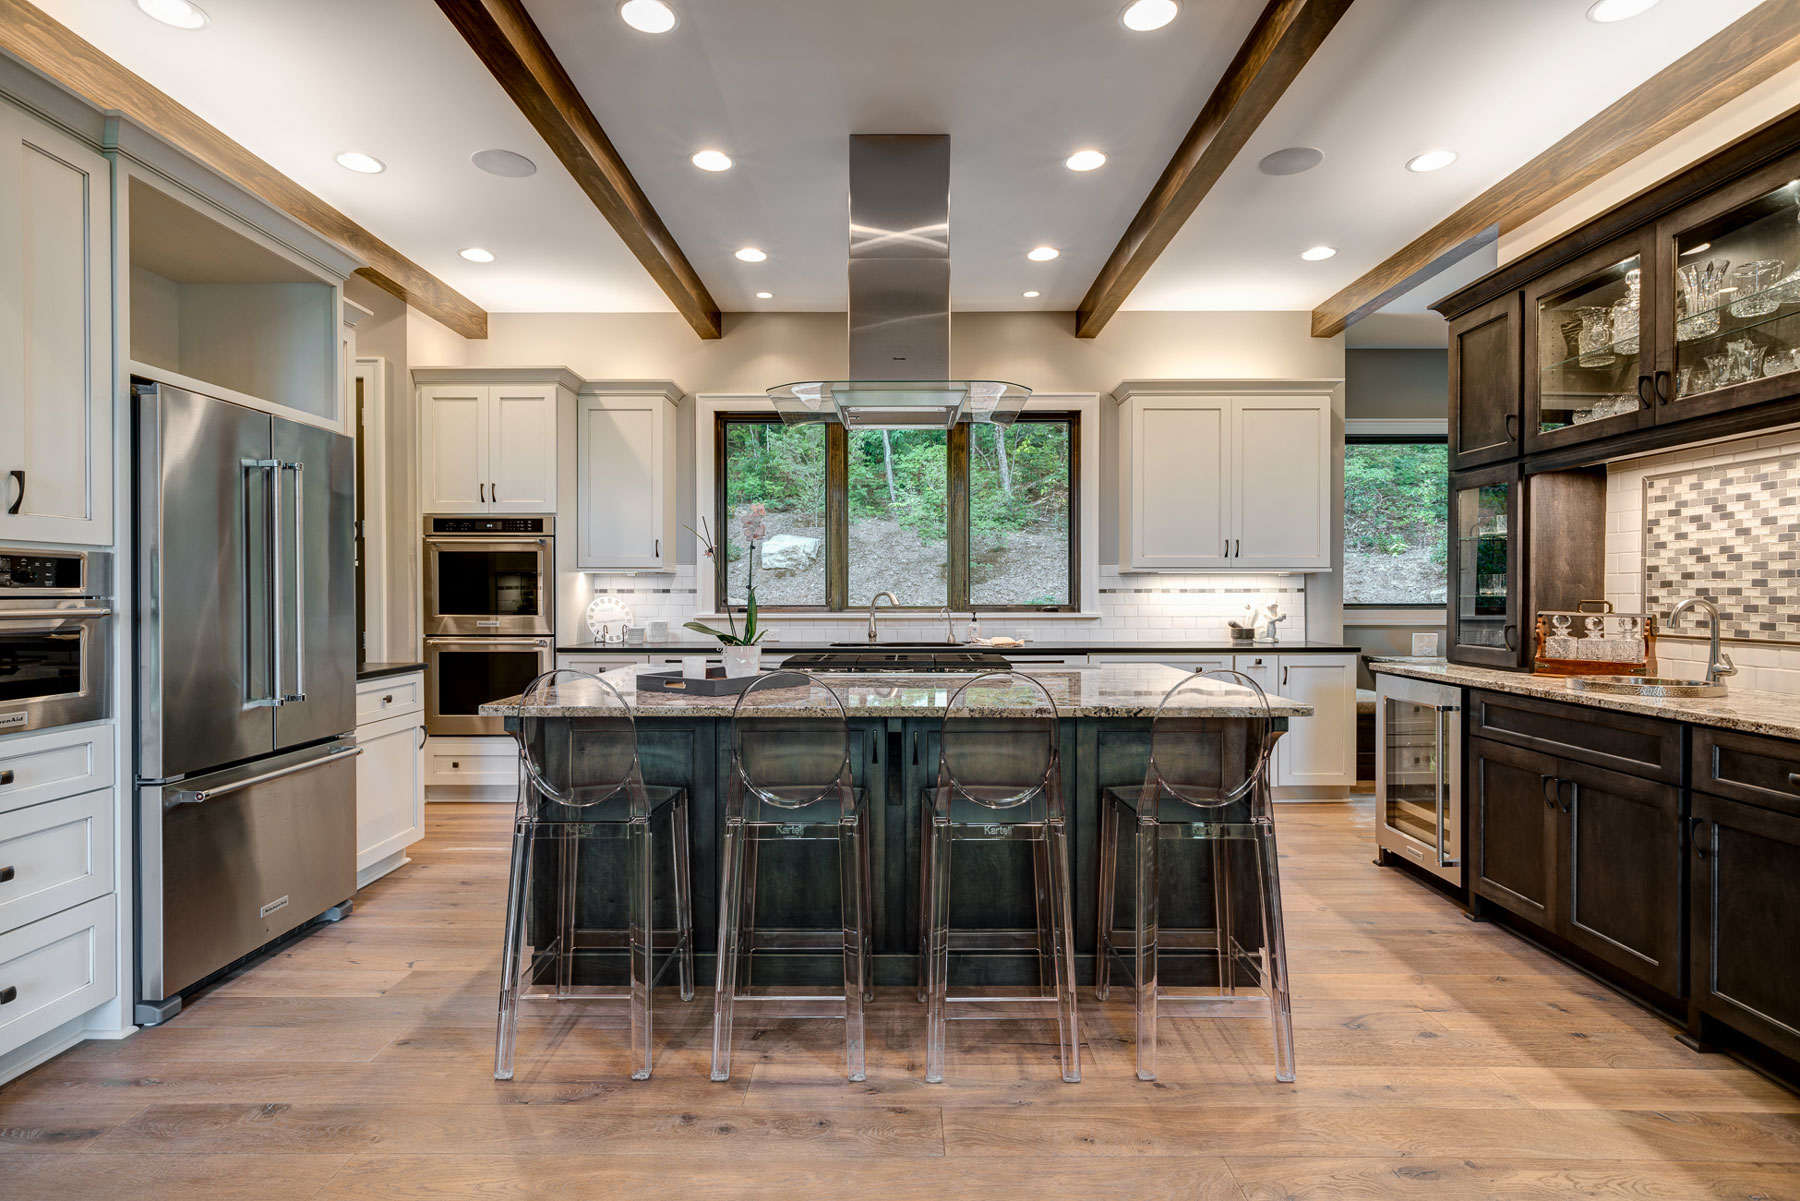 Kitchen of the Waynesville Modern Mountain Home